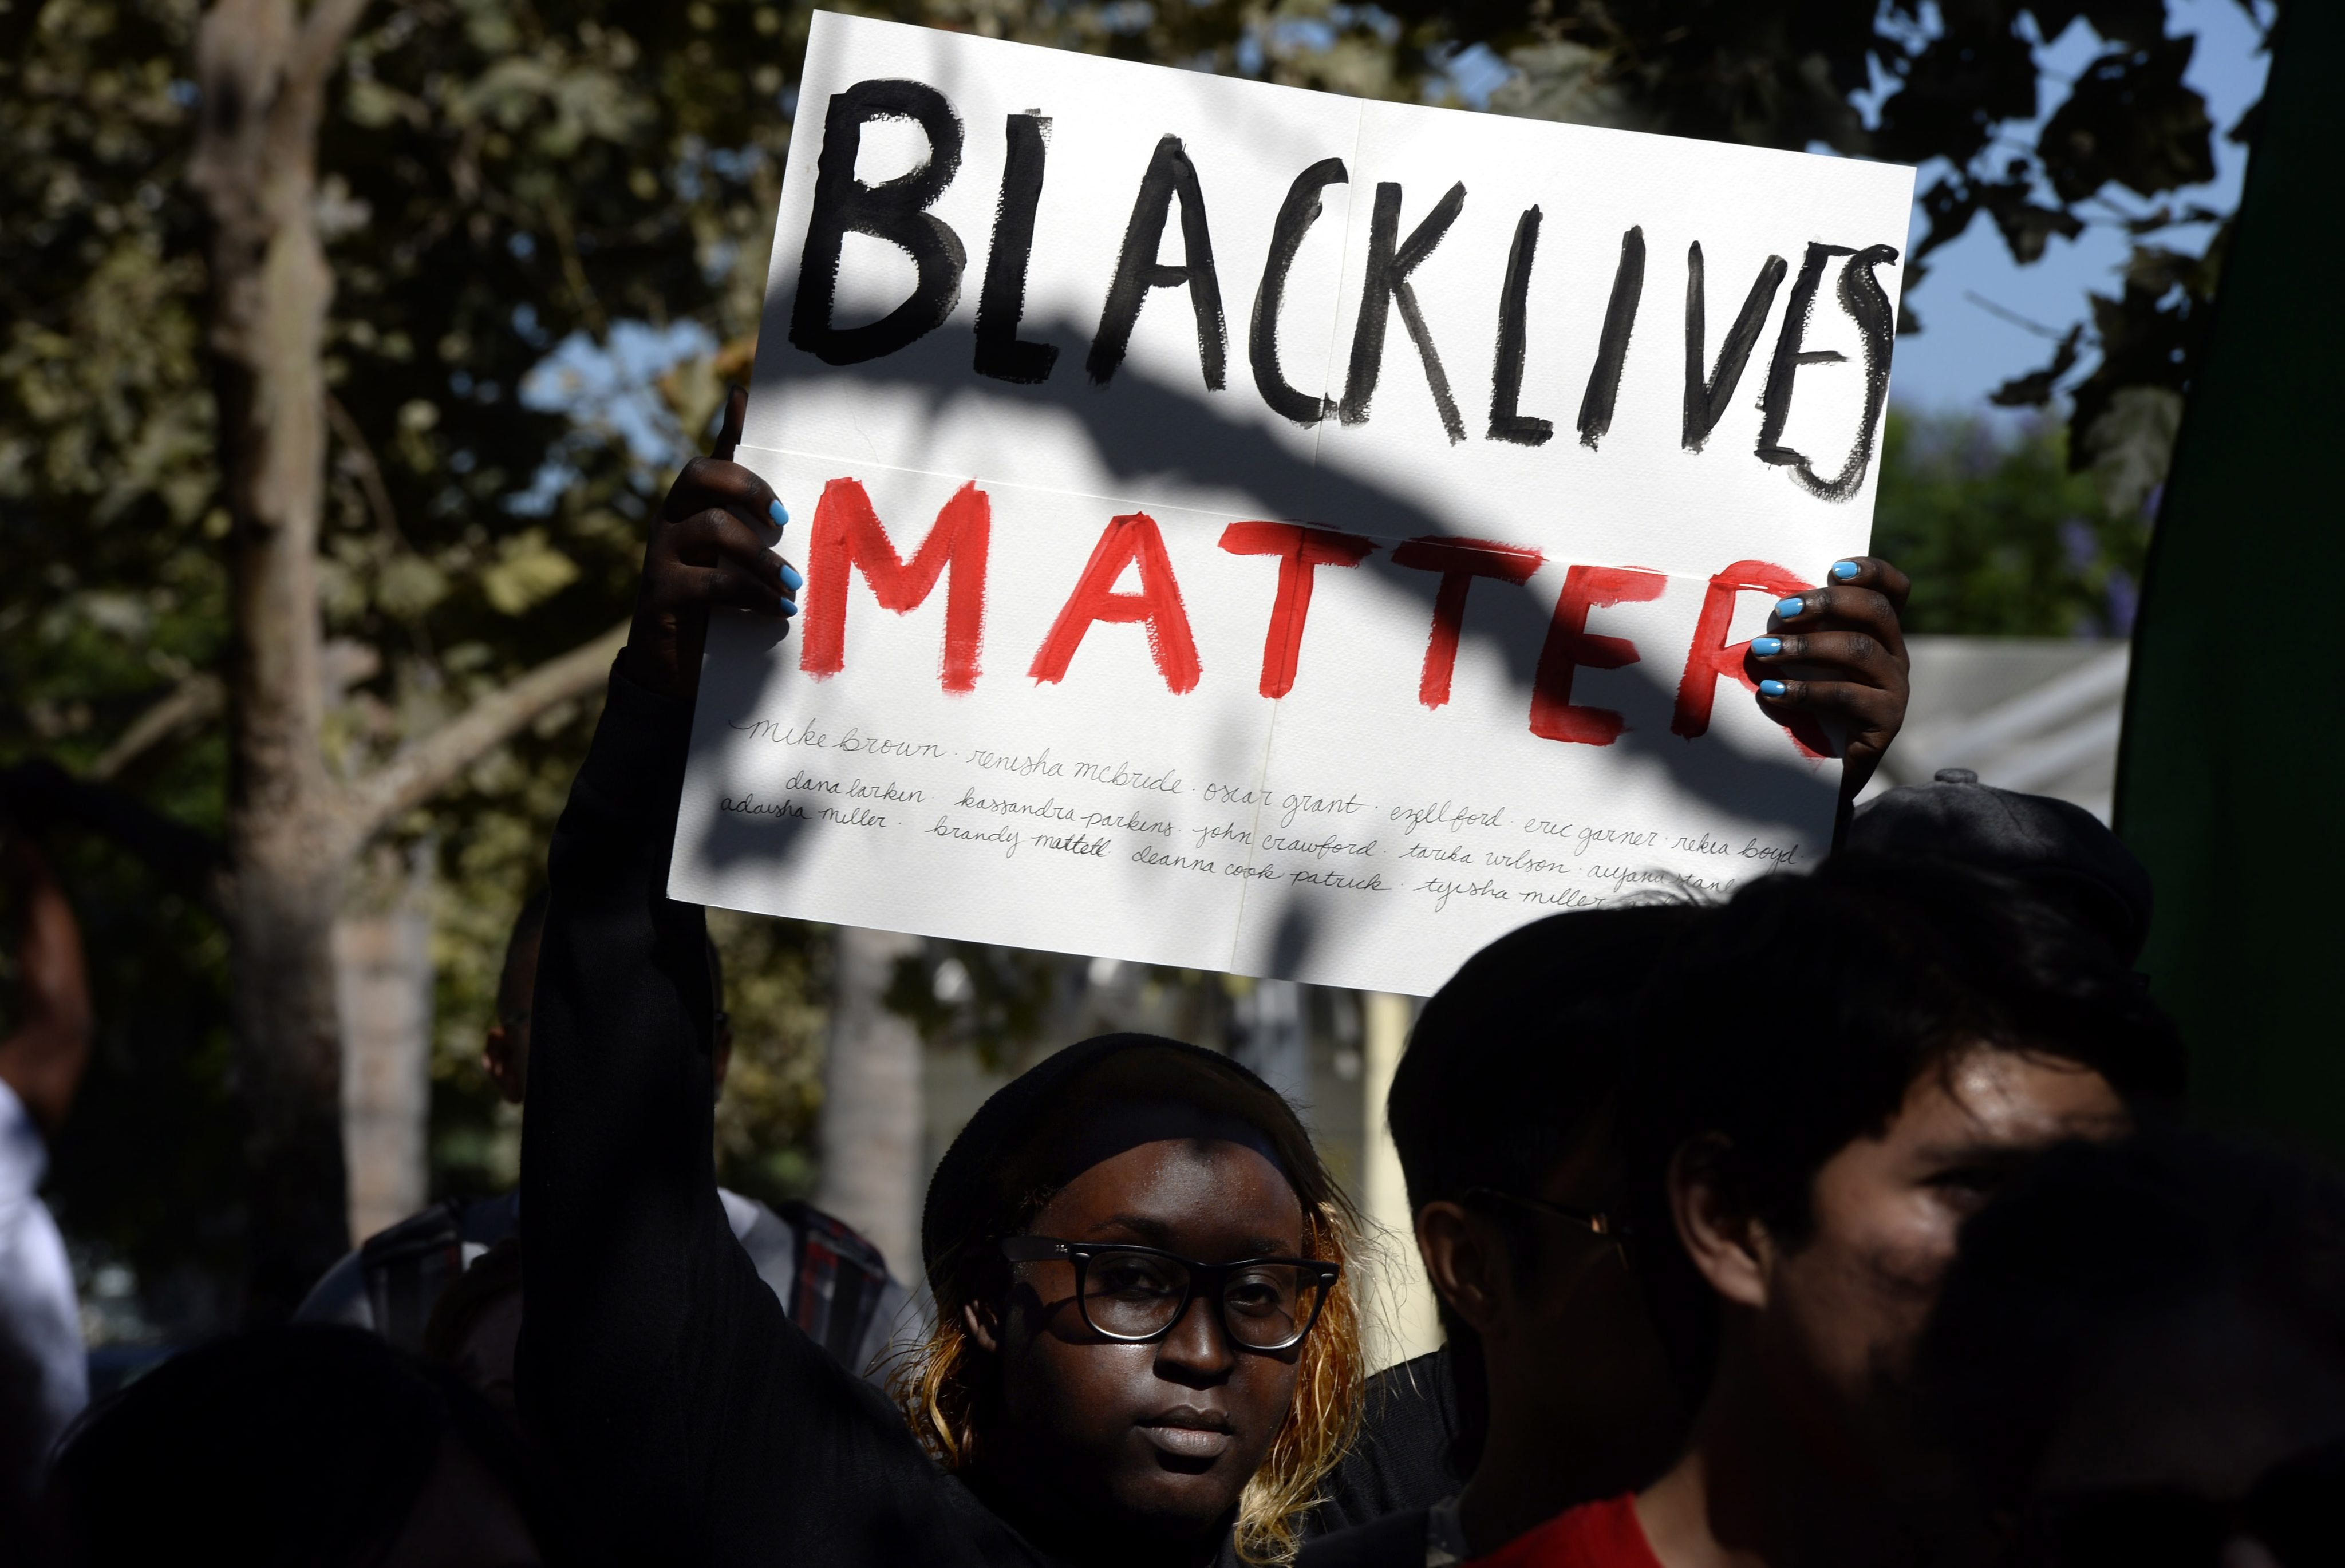 A protestor holds a sign that reads 'Black Lives Matter' as she joins hundreds of demonstrators who gathered in Leimert Park in South Central Los Angeles, California, USA, 14 August 2014, to protest the police shooing of Mike Brown in Missouri.